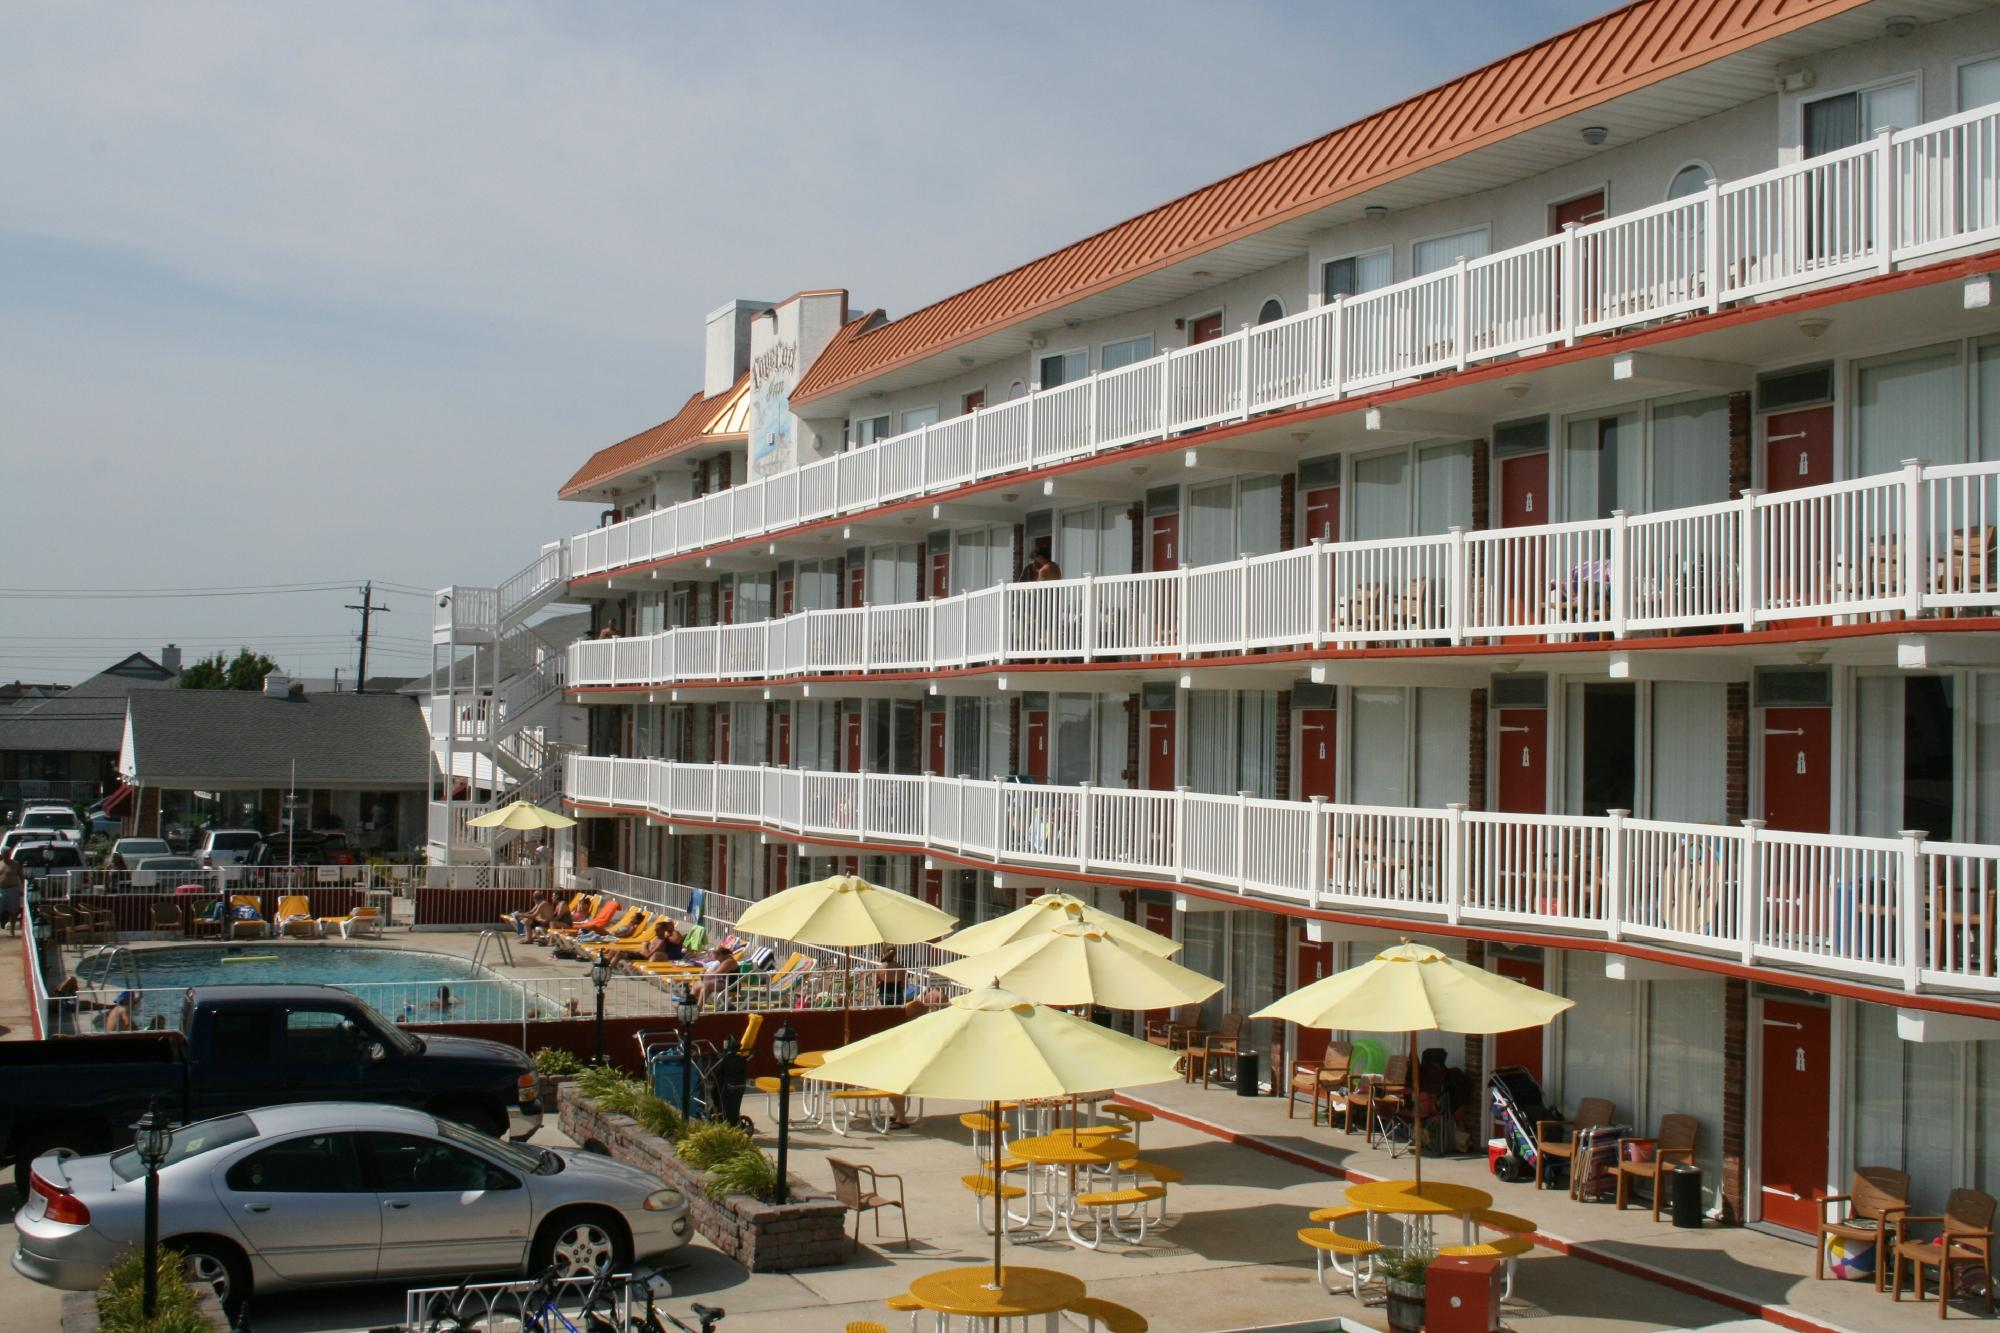 Cape Cod Inn Motel